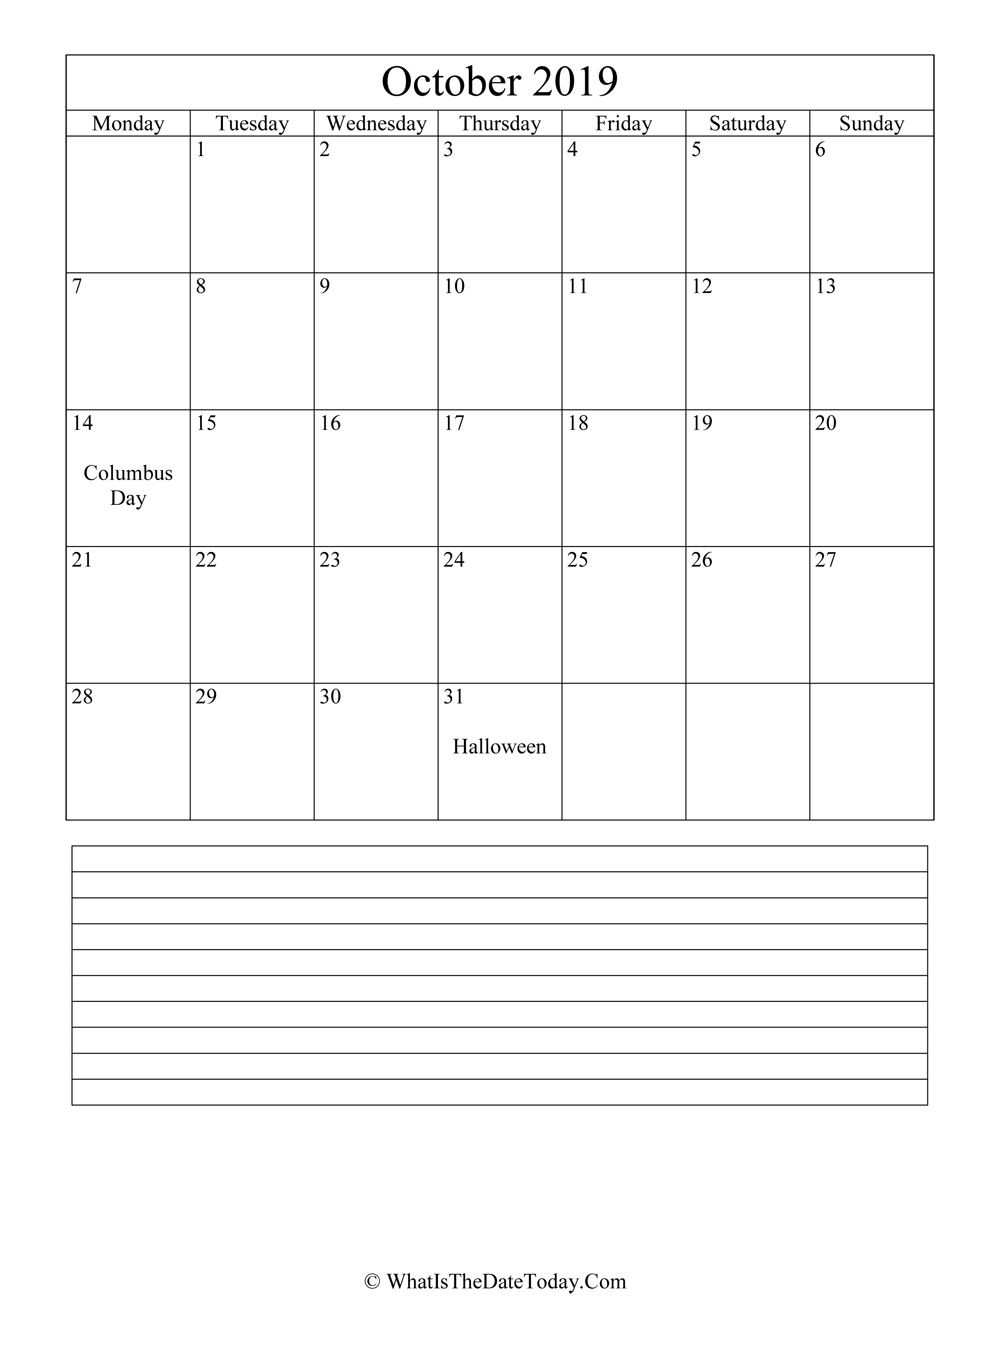 October 2019 Calendar Editable With Notes Space Vertical Layout